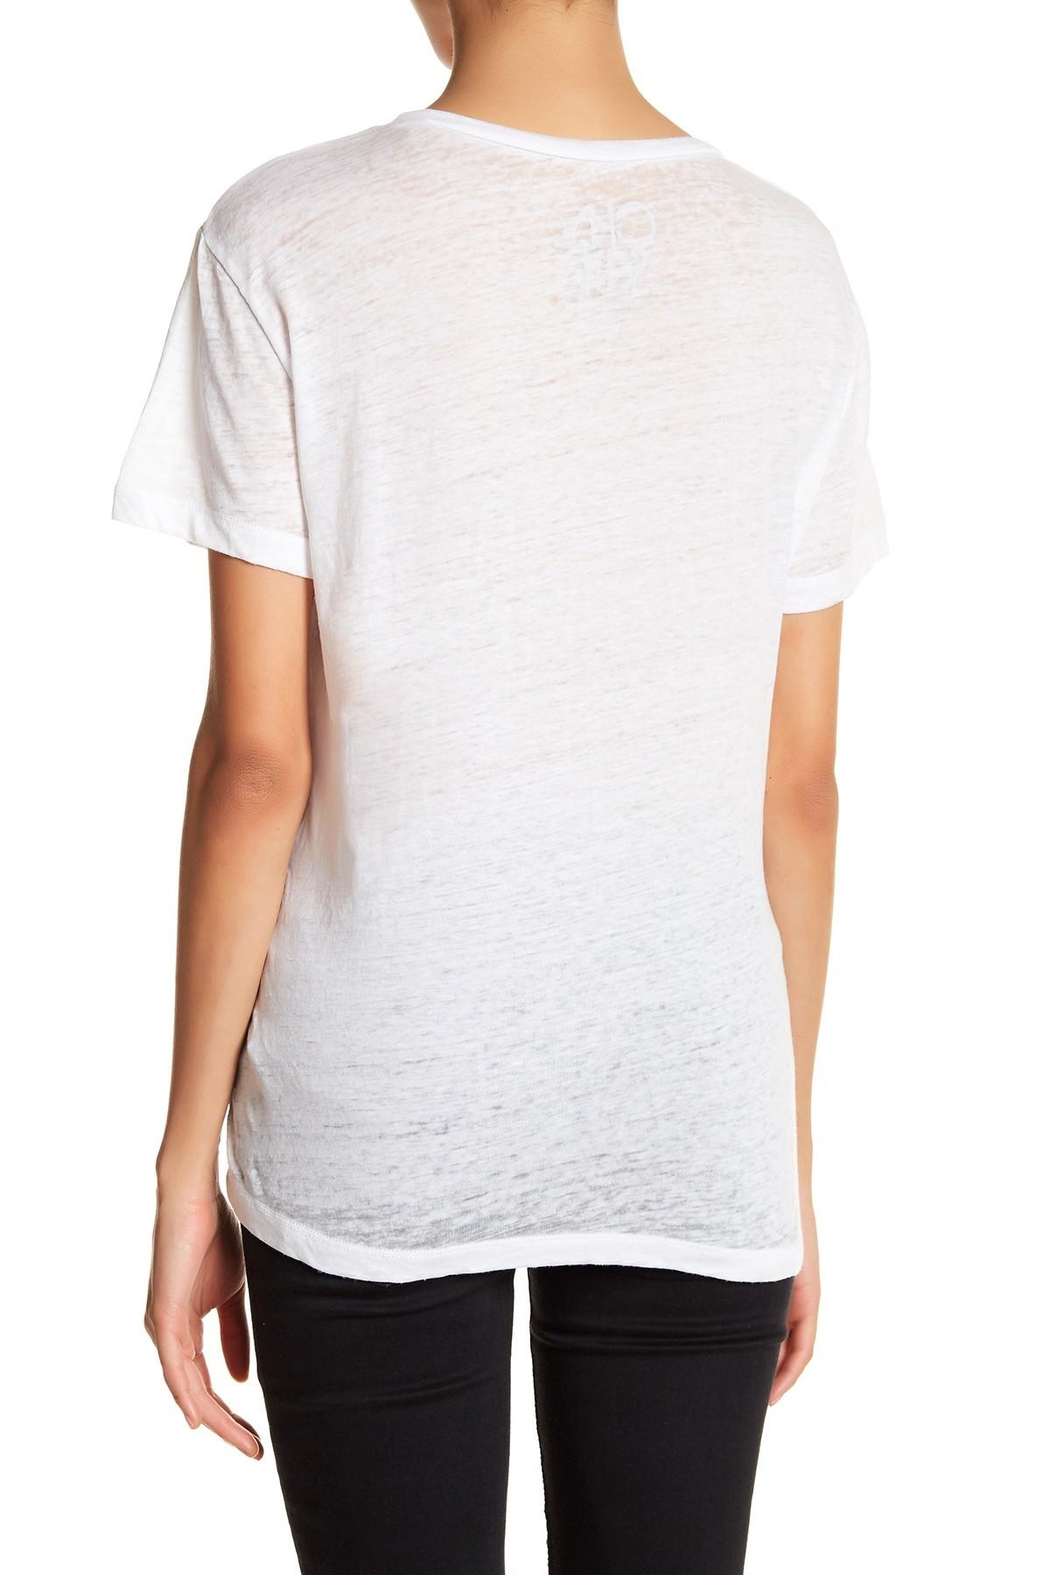 Chaser Love Tee Top - Front Full Image